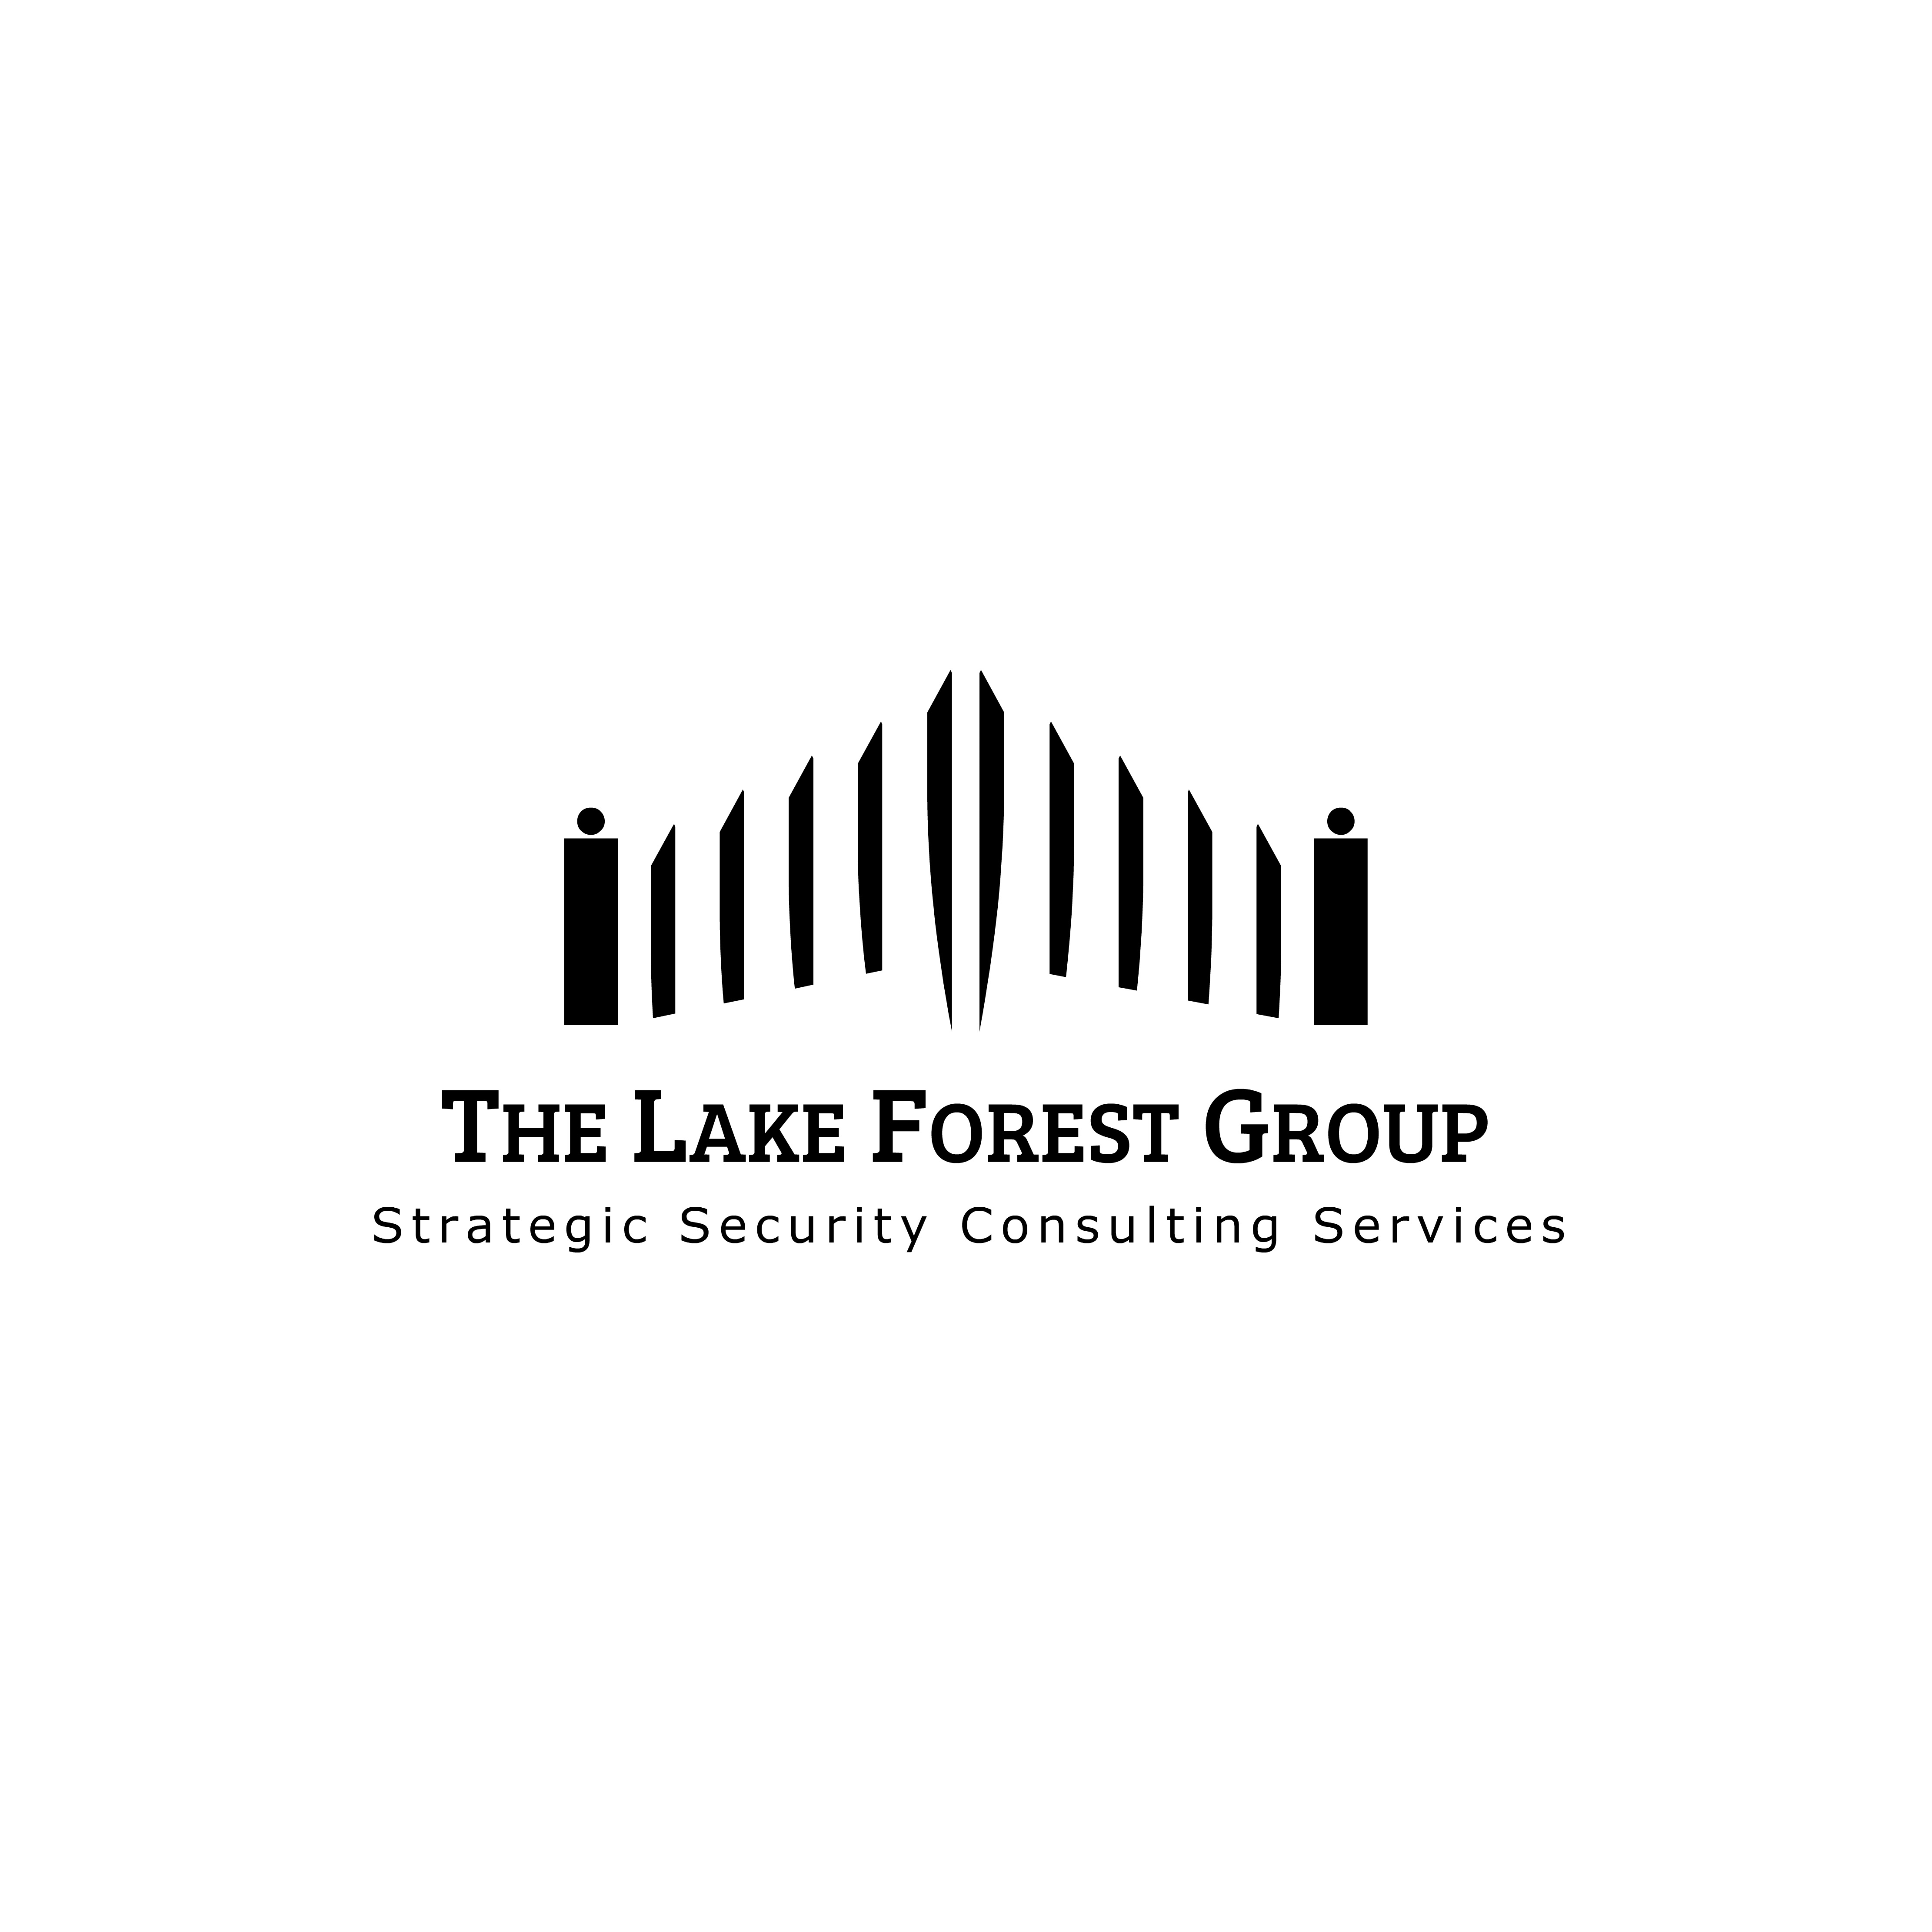 The Lake Forest Group